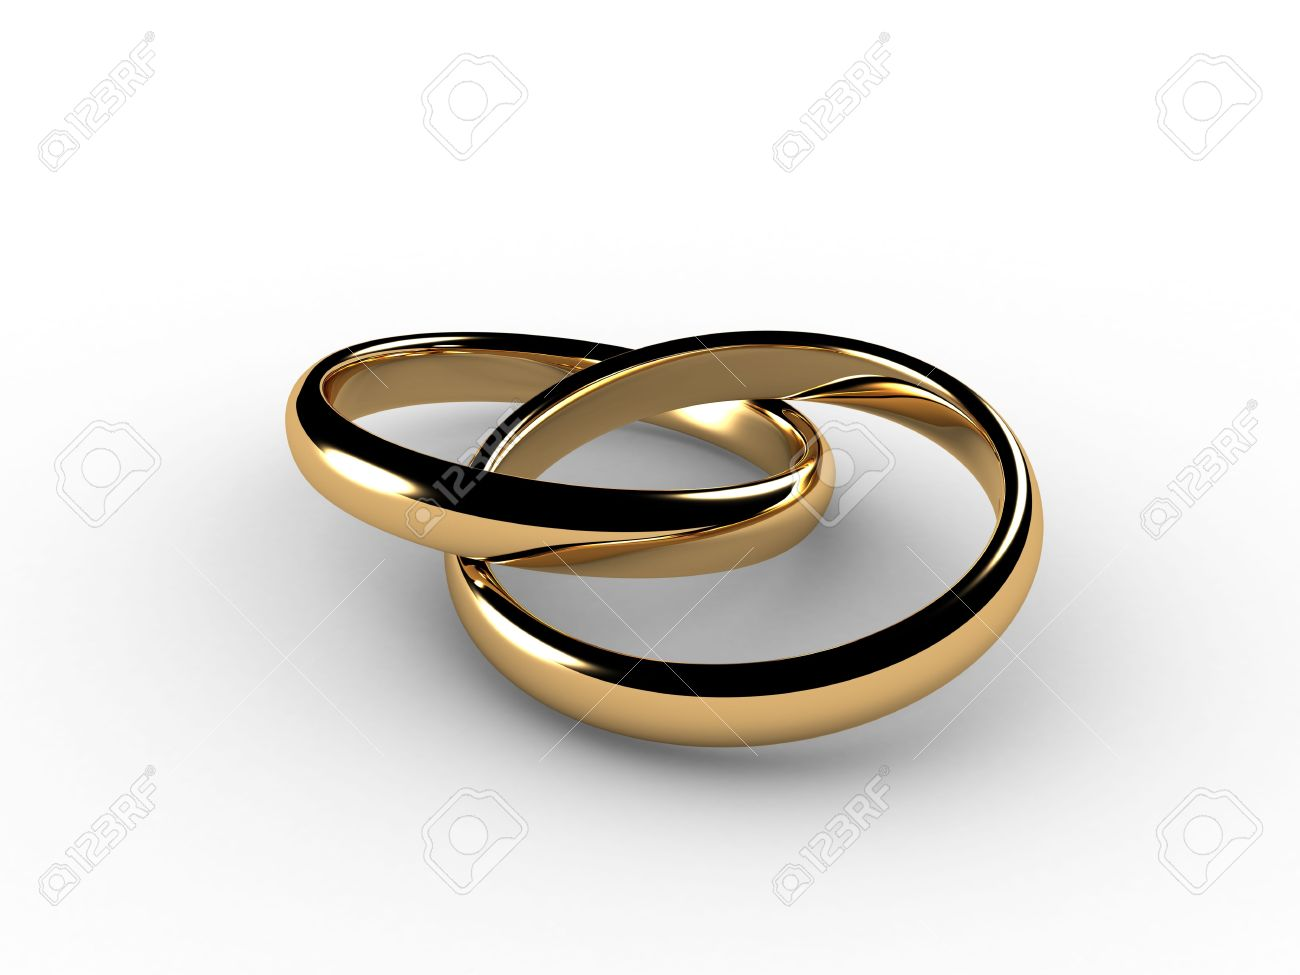 3d wedding rings joined together i had to simulate physics to